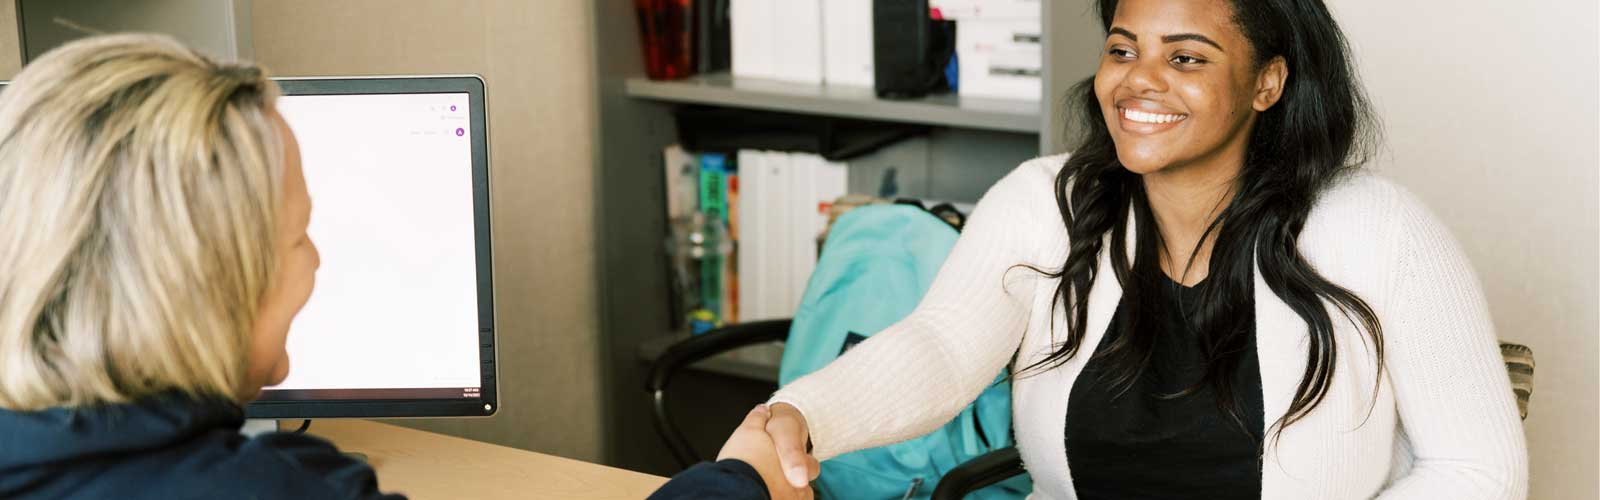 a graphic depicting person on a computer with headphones